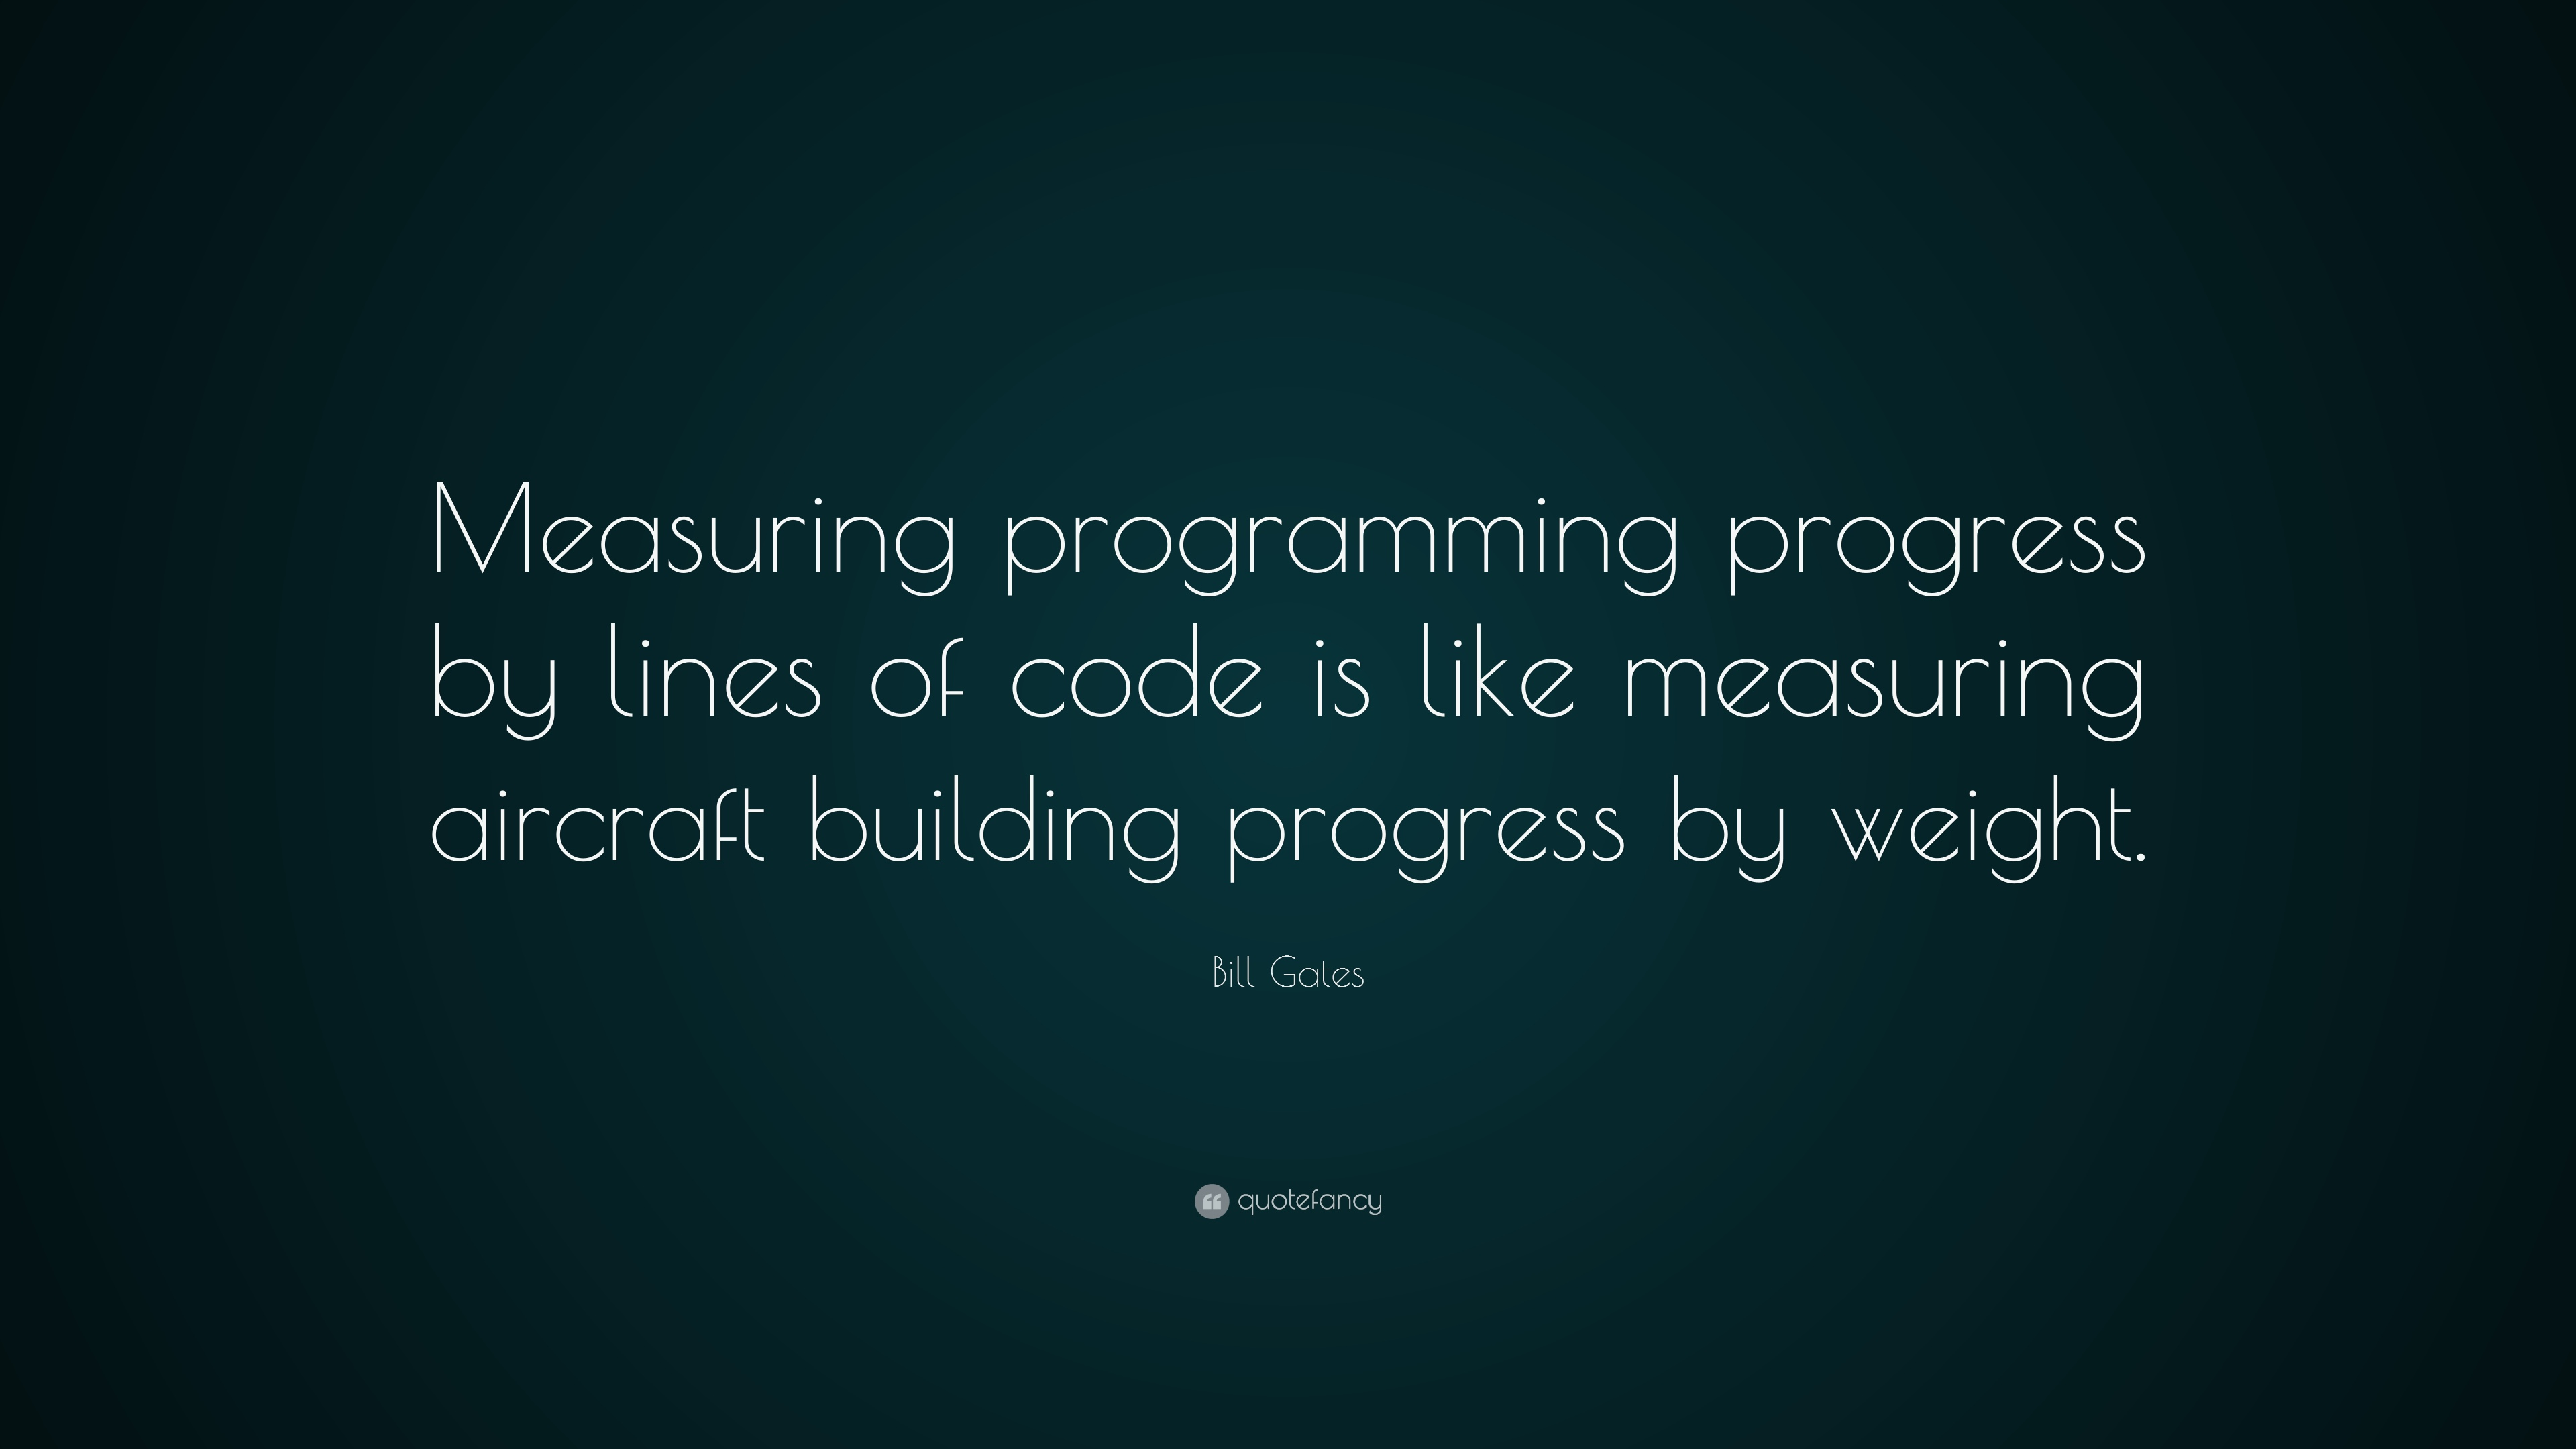 """Measuring programming progress by lines of code is like measuring aircraft building progress by weight"""